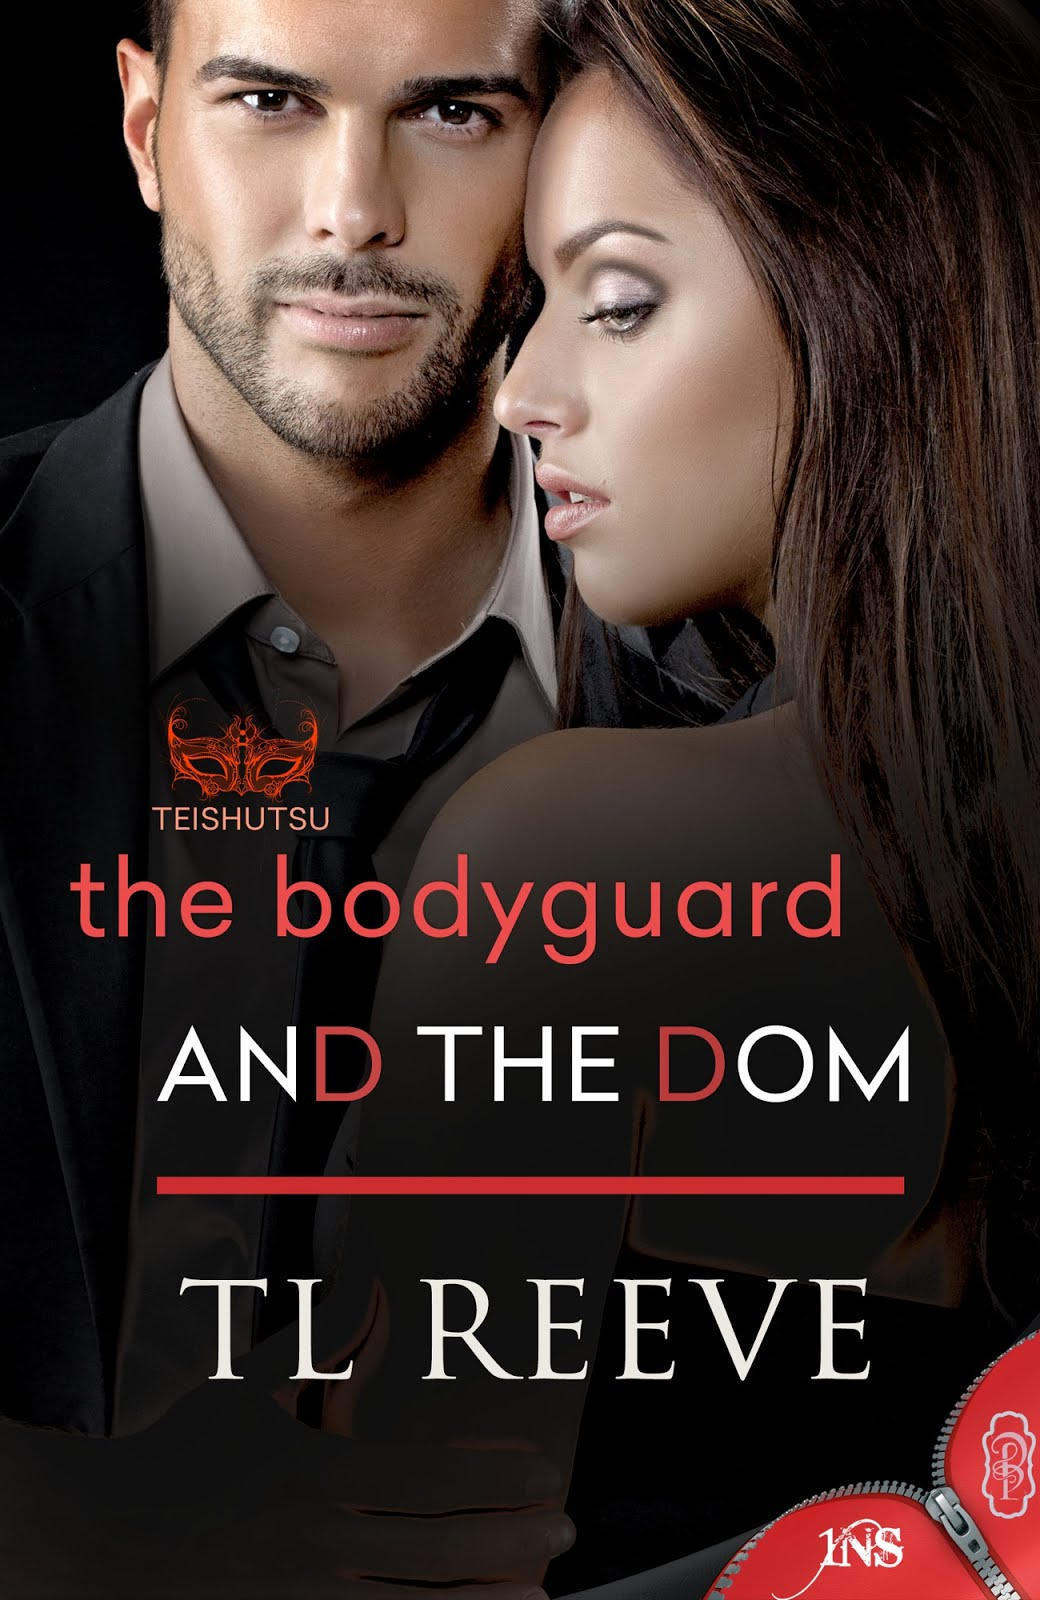 The Bodyguard and The Dom